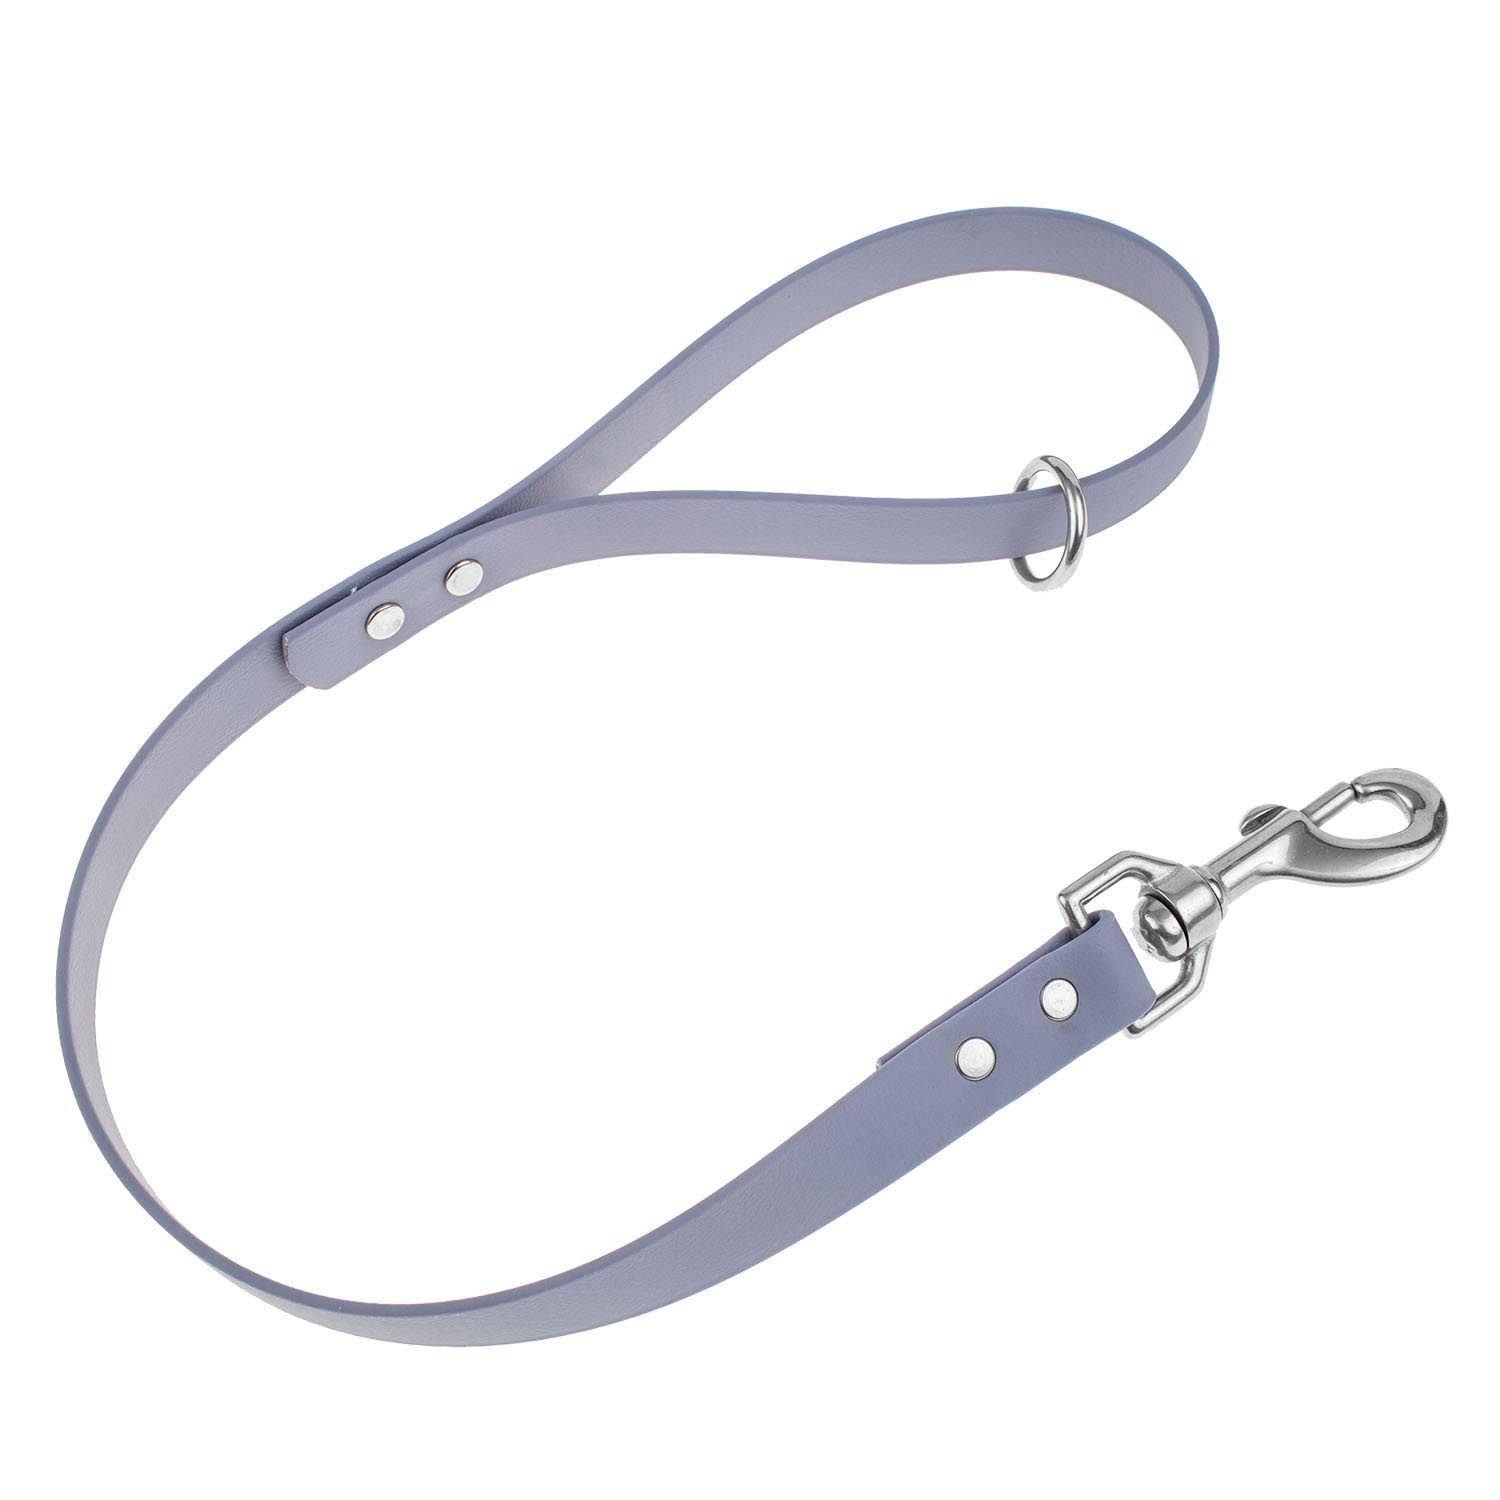 Waterproof traffic leash - gray